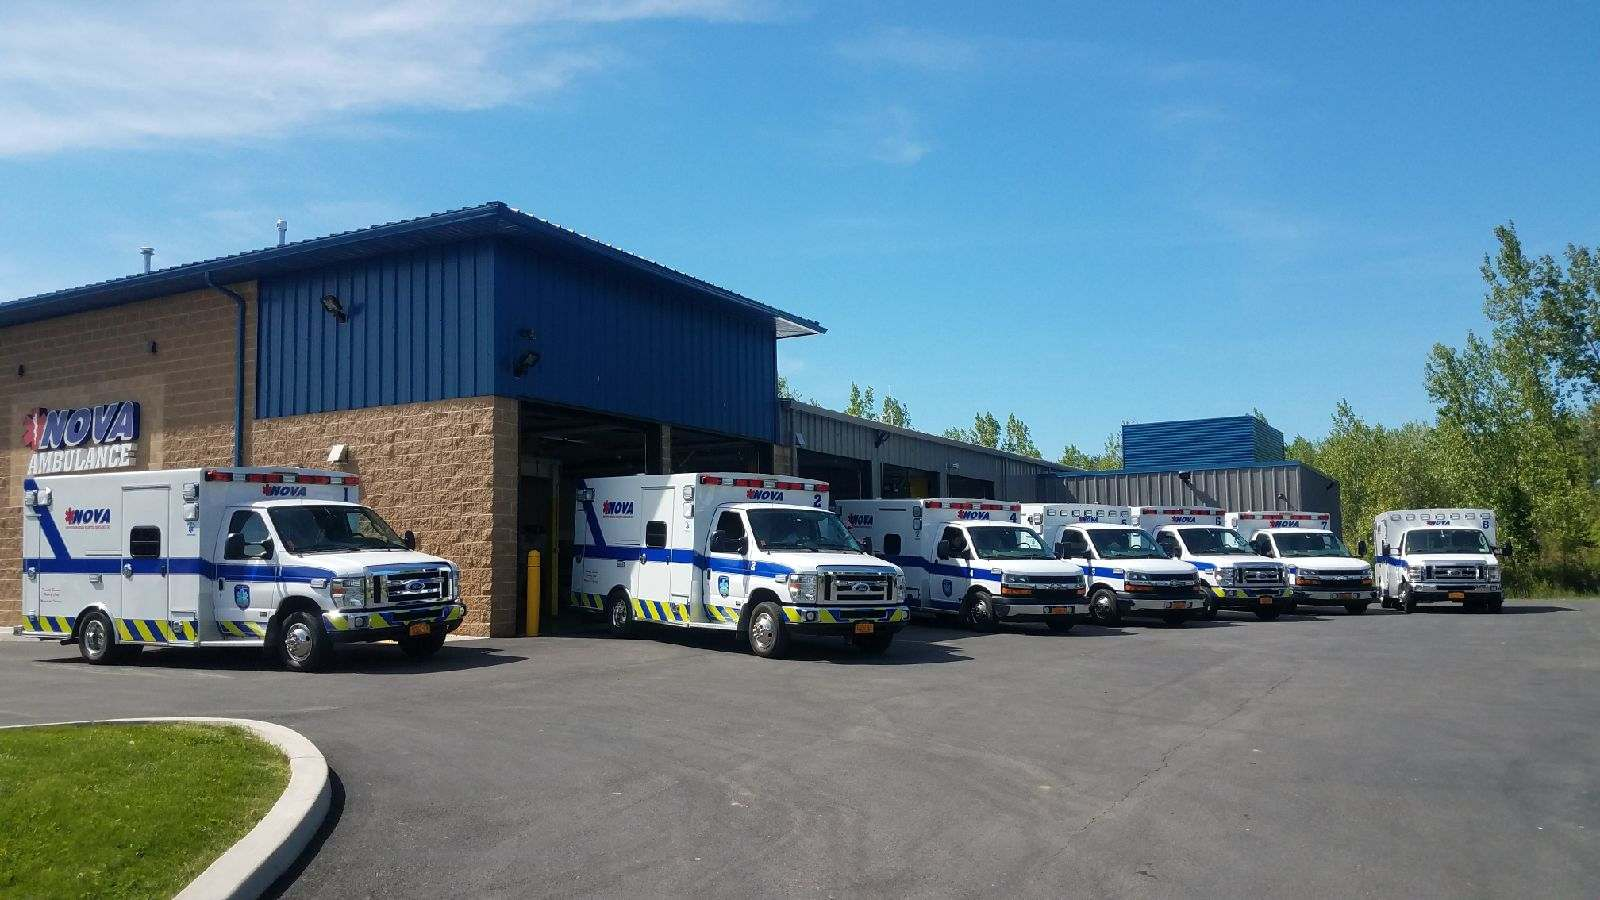 Eight modern ambulances and two squad vehicles.